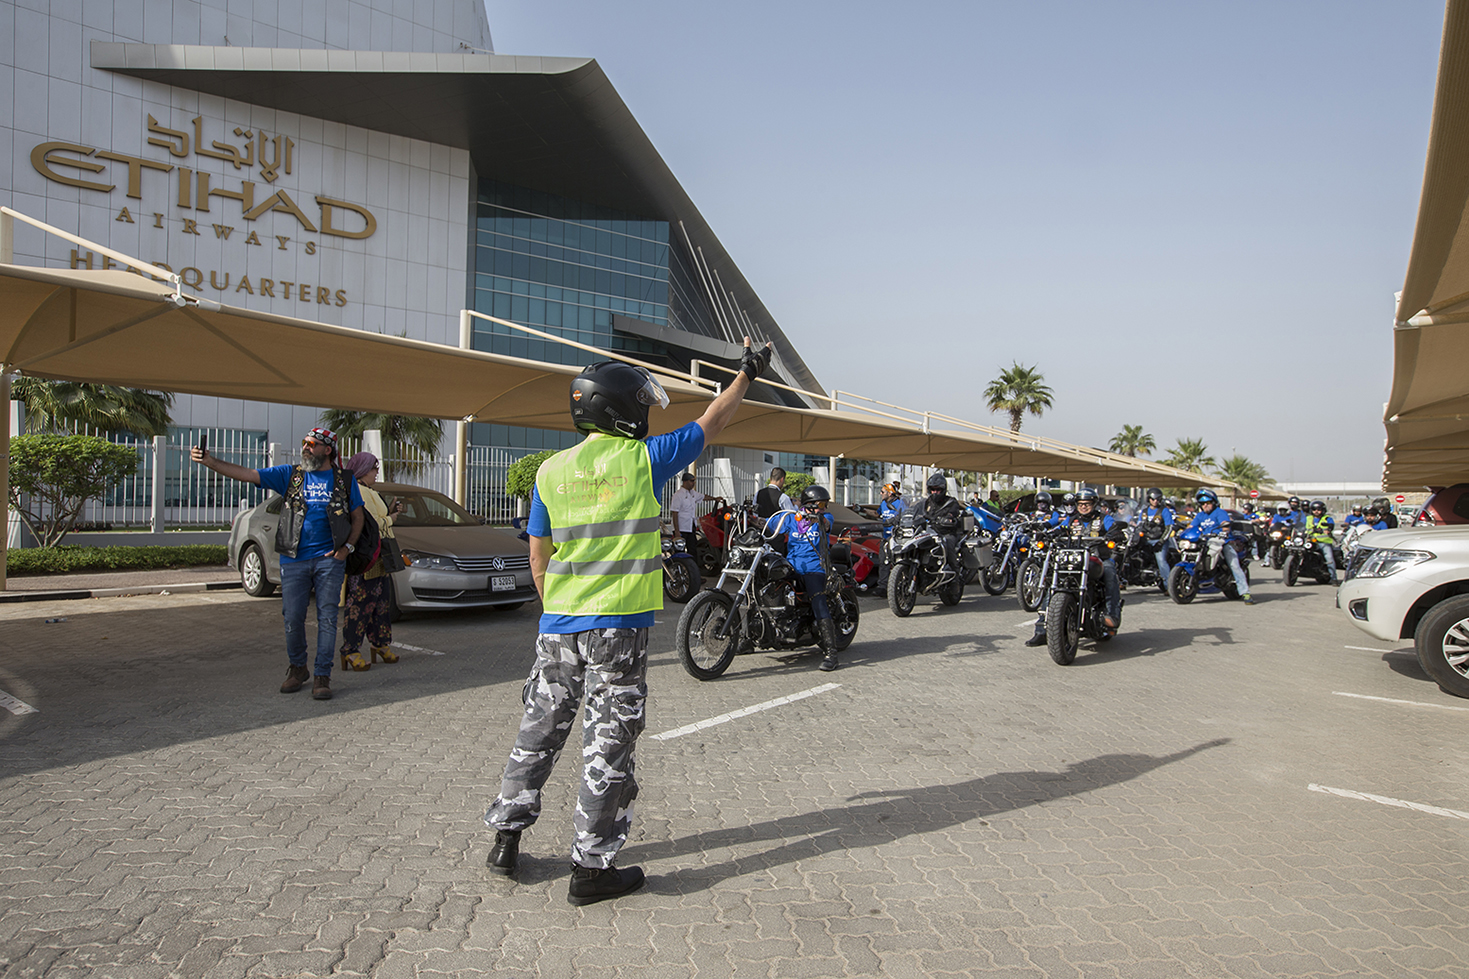 etihad aviation group organises motorbike parade to support autism awareness month 2